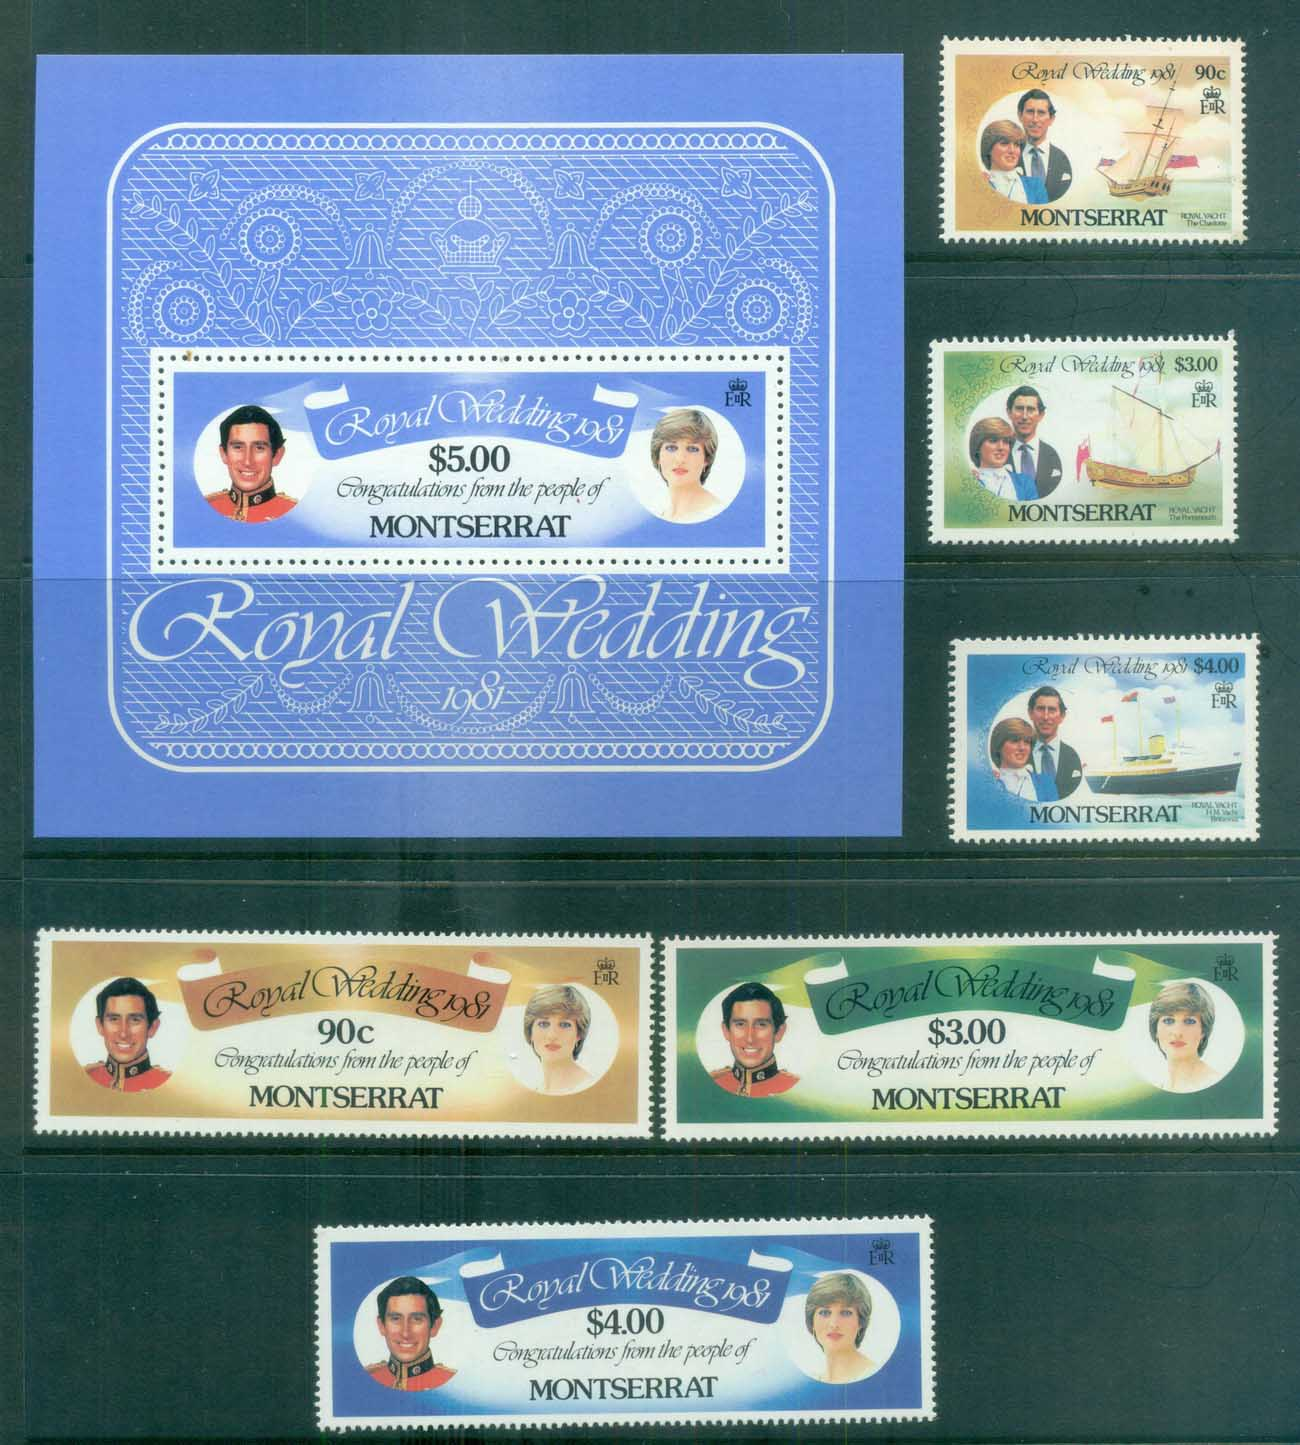 Montserrat 1981 Charles & Diana Royal Wedding + MS MUH lot81894